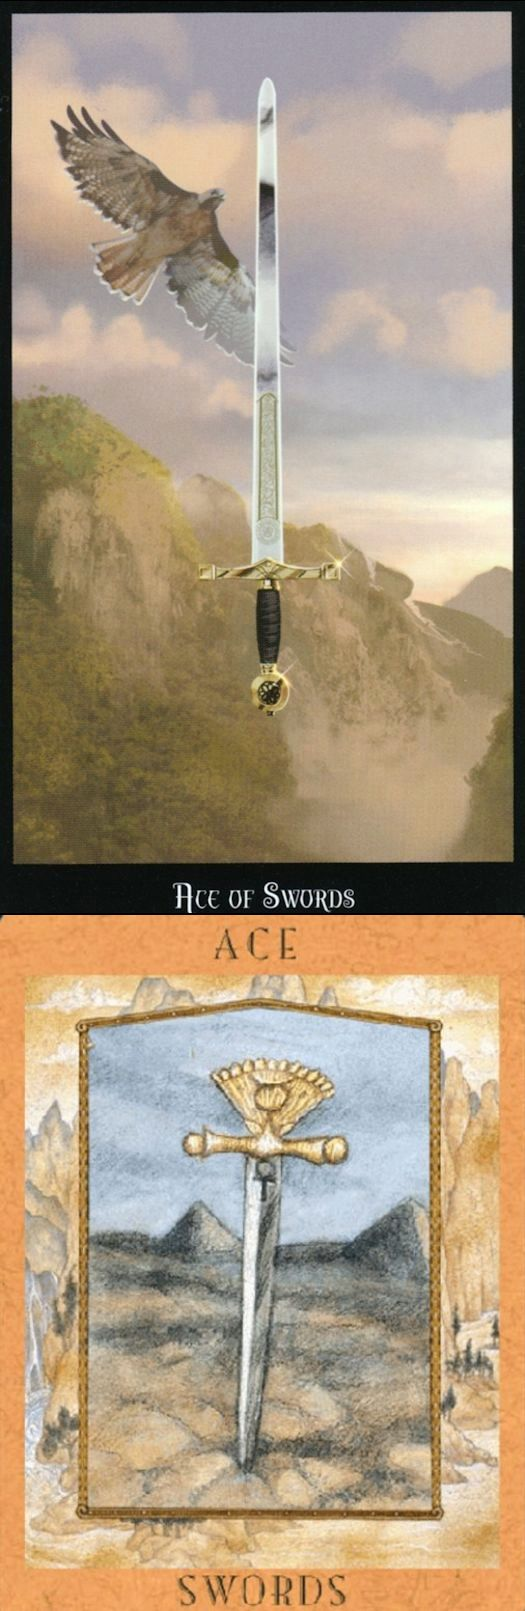 Ace of Swords: potential for immense power and success and chaos (reverse). Witches Tarot deck and Goddess New Tarot deck: absolutely free tarot card reading, tarotof dreams vs free love reading. Best 2017 tarot reading for beginners and gotham.